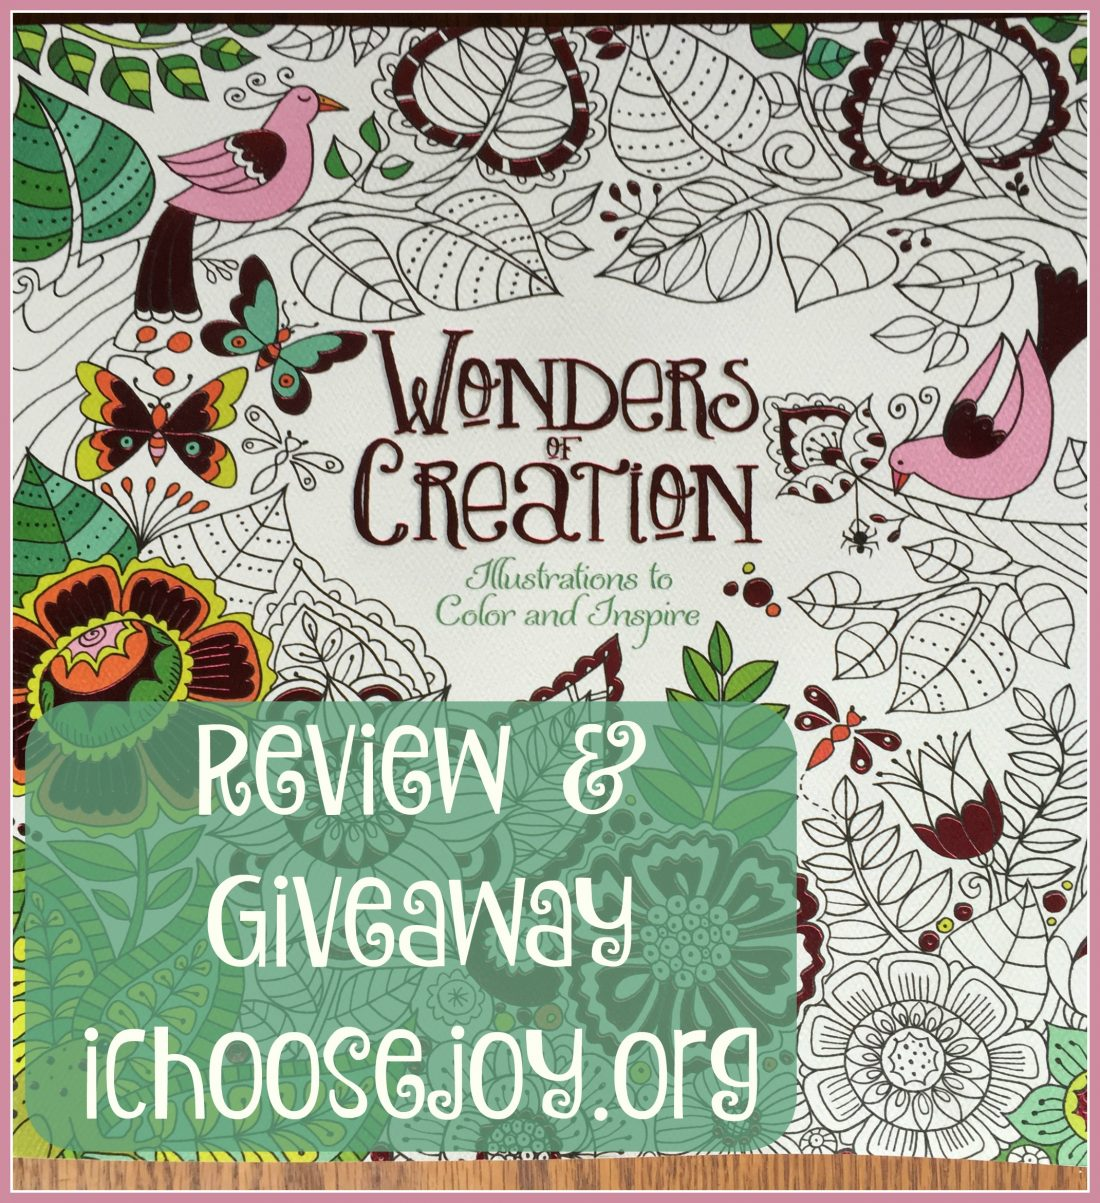 Review & Giveaway: Wonders of Creation: Illustrations to Color and Inspire